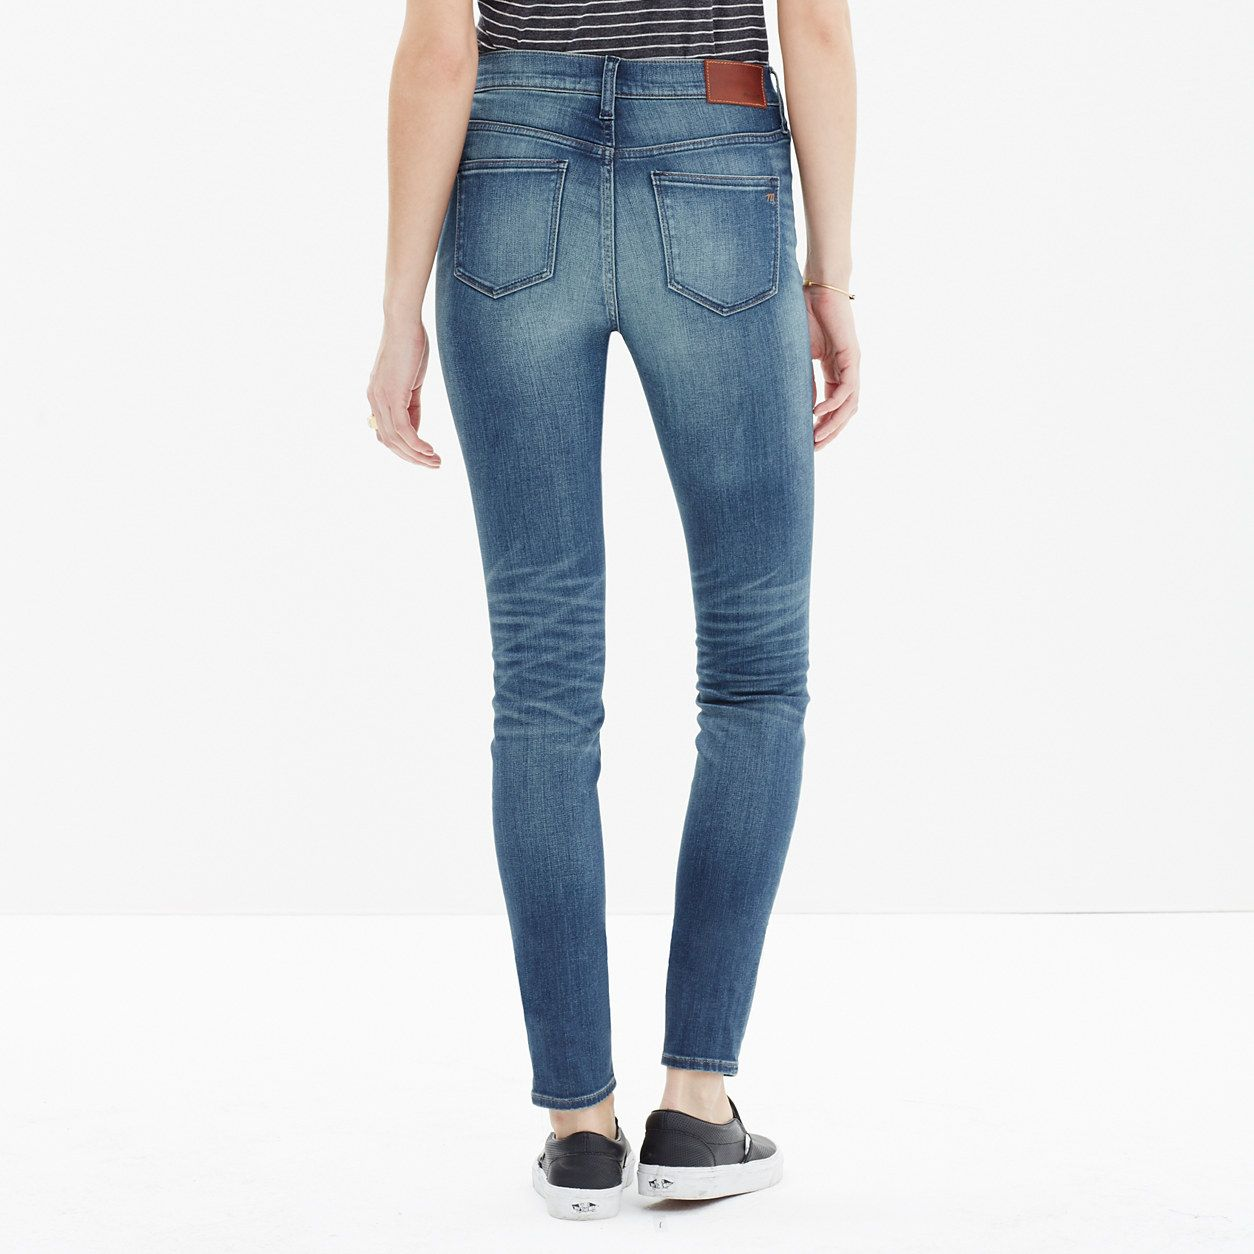 High Riser Skinny Skinny Crop Jeans: Patch-Pocket Edition : high riser skinny jeans | Madewell